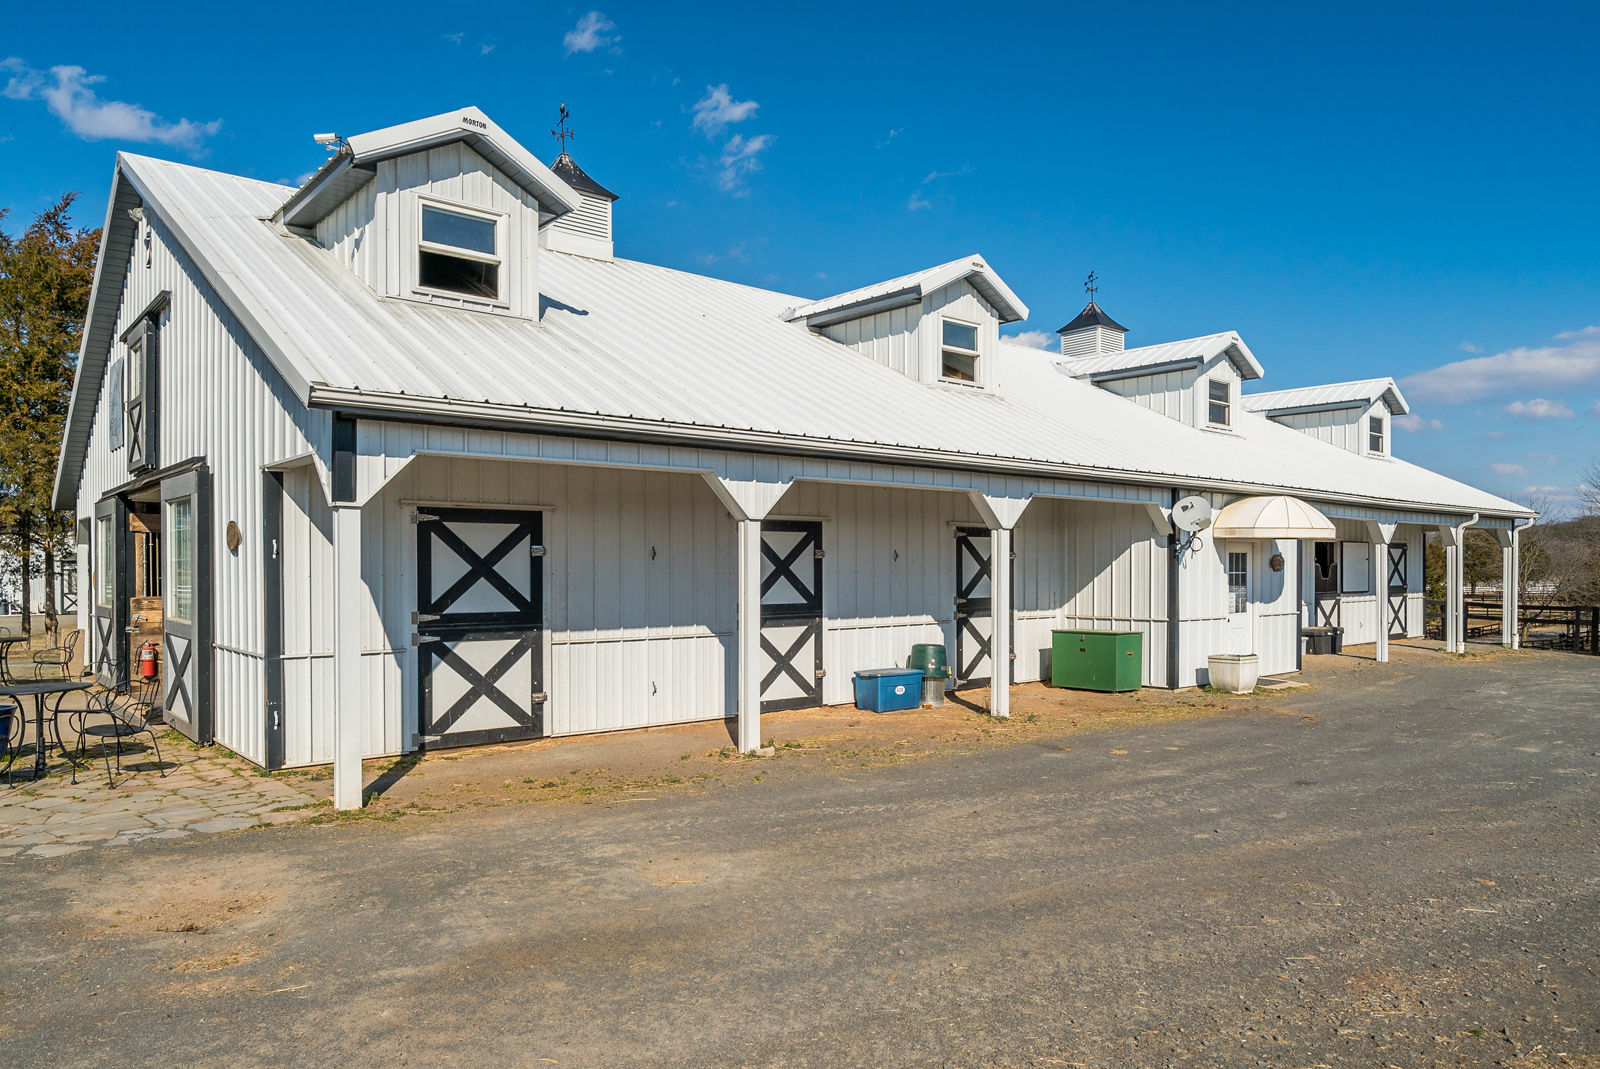 """The property is scheduled to sell to the high bidder, regardless of price, so anybody that is interested in acquiring this historically significant and well developed property needs to bid at this auction,"" said Stephen Karbelk, CEO of Auction Markets."